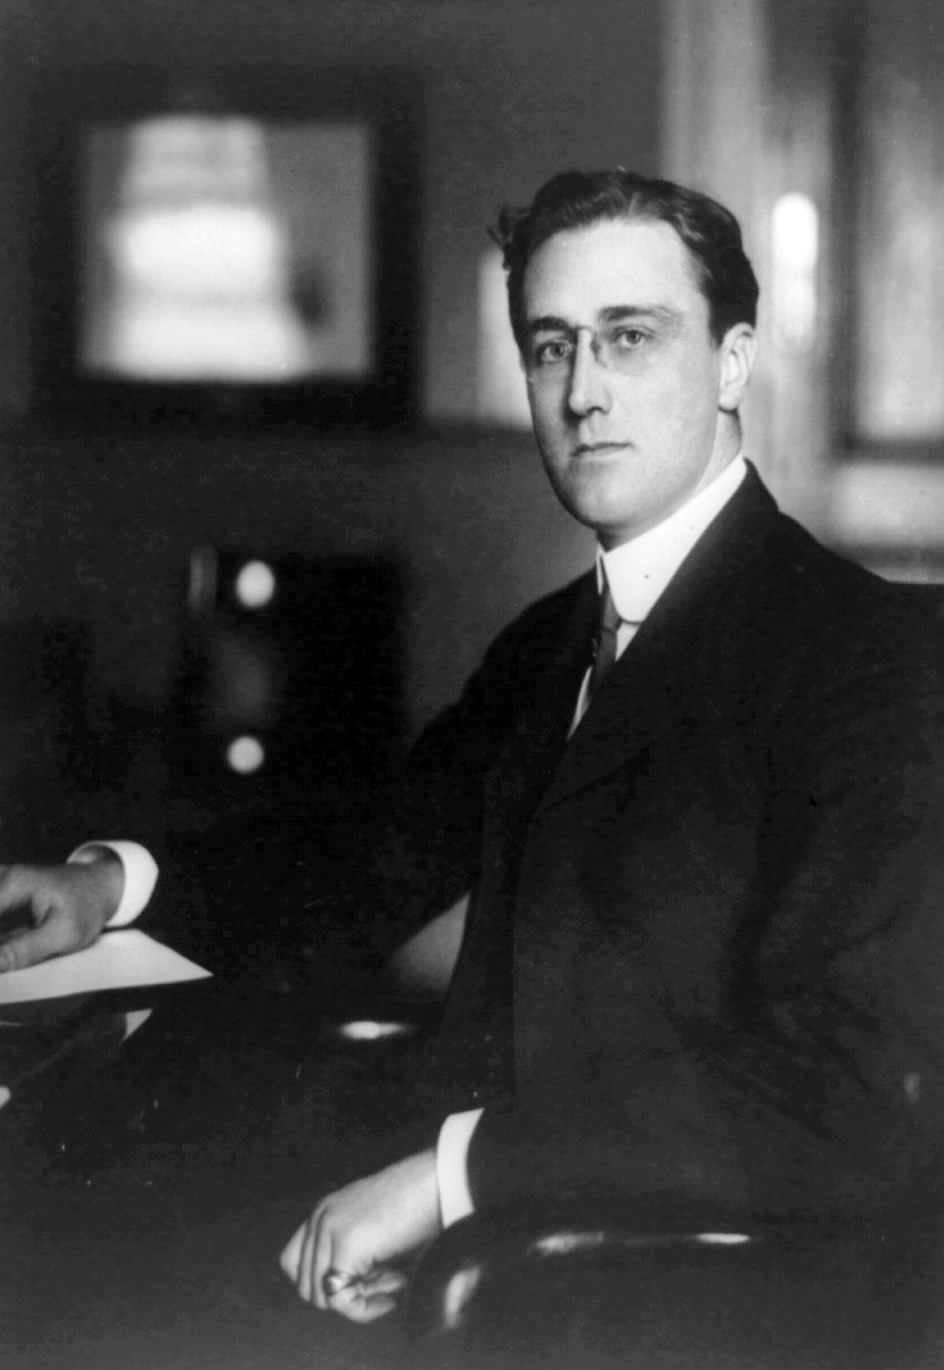 the outside influences of franklin roosevelts new deal program Fdr and the new deal programs, timeline, how it worked fdr and the new deal the new deal is an economic program franklin d roosevelt launched to end.